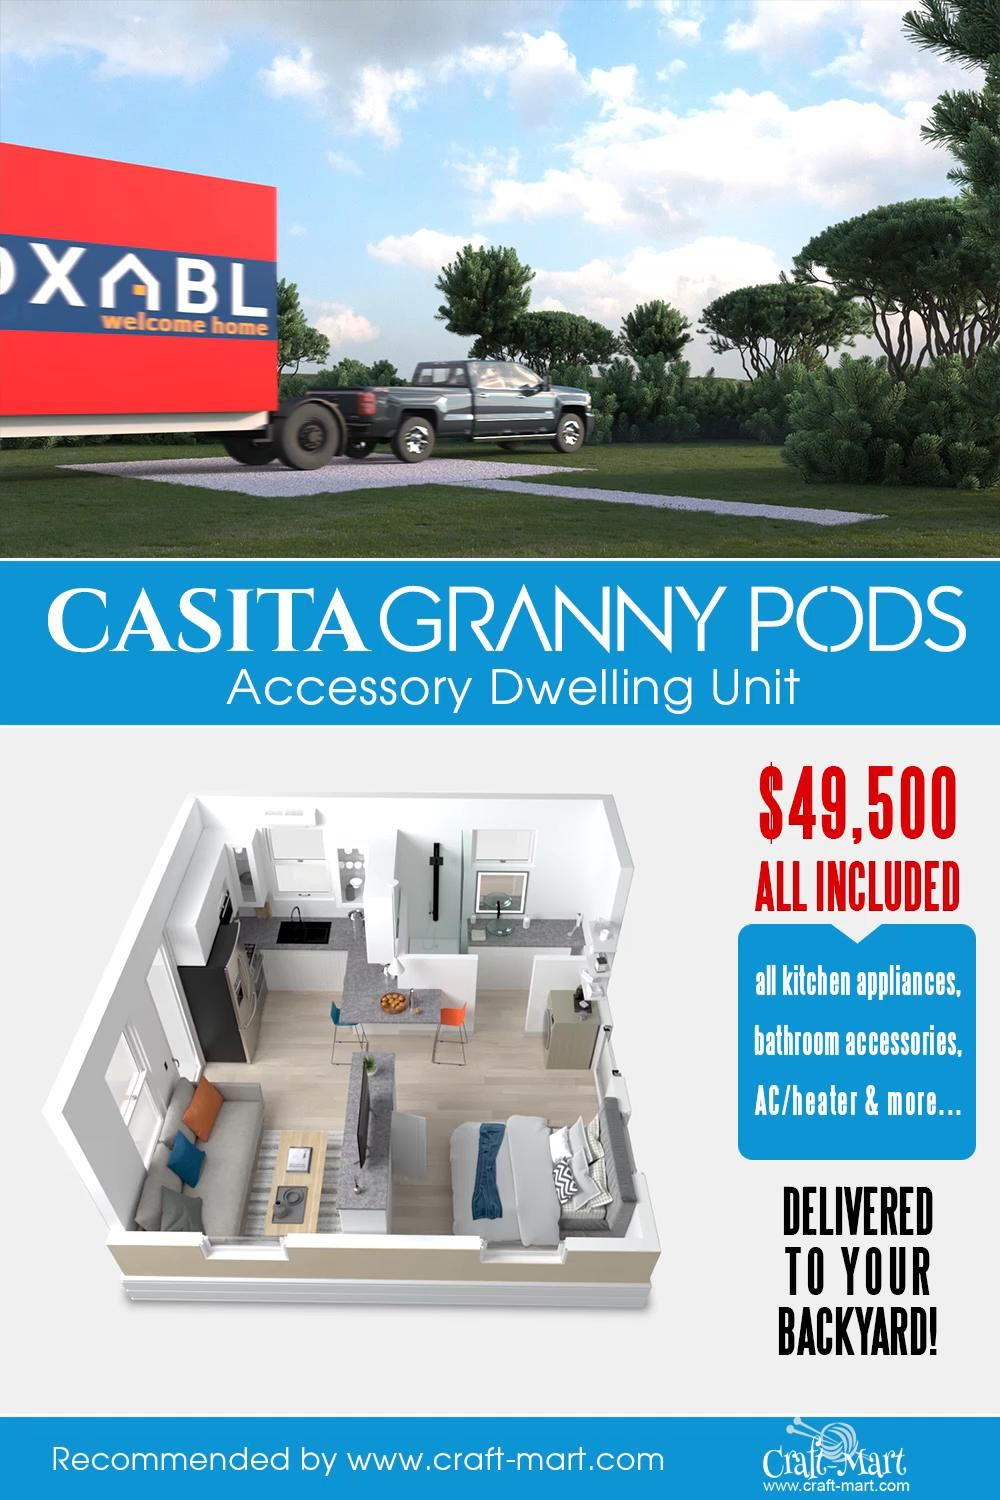 Awesome Granny Pods with everything included